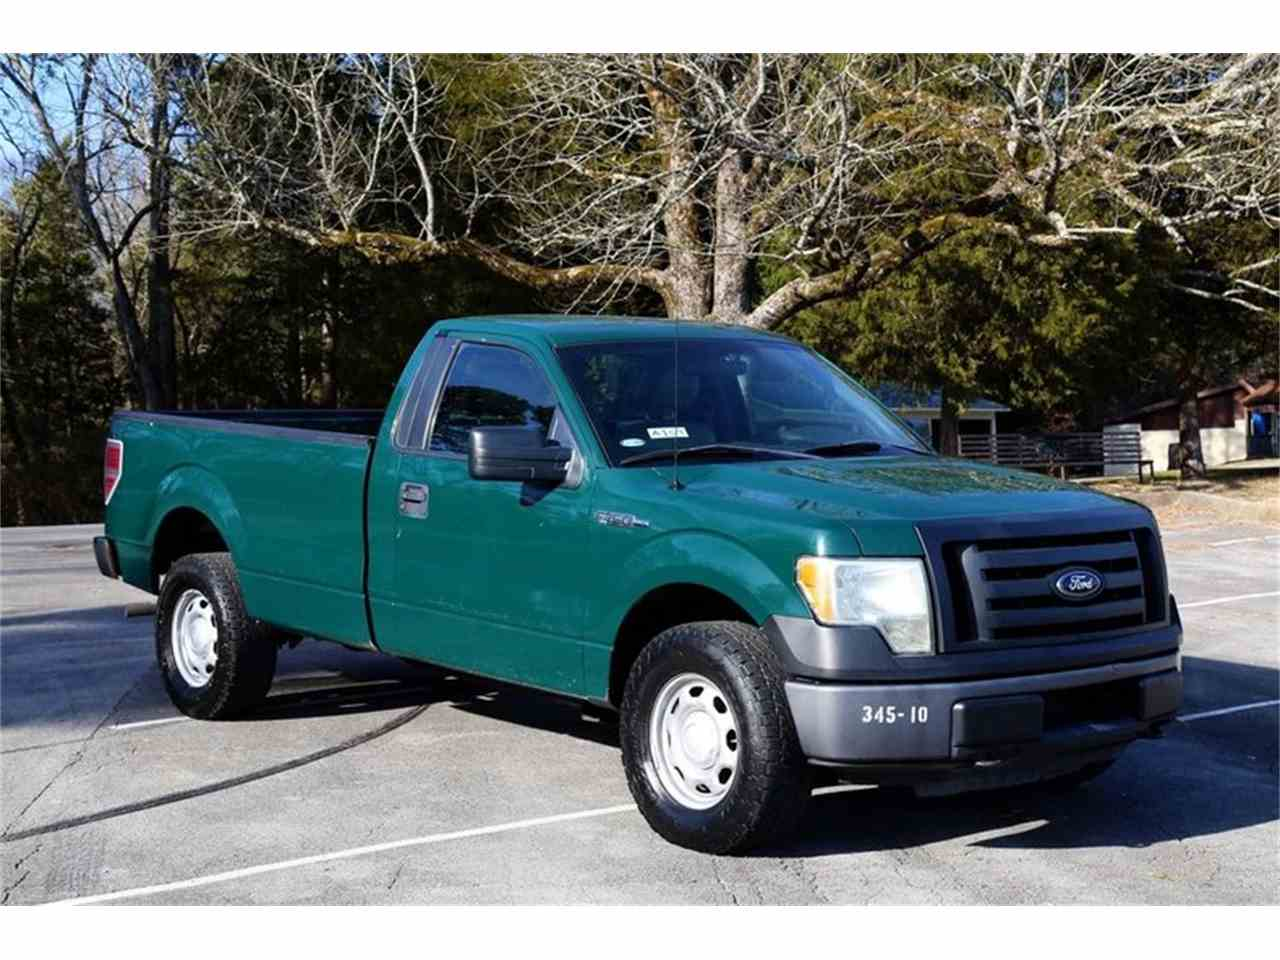 Ford ford 2010 : 2010 Ford F150 for Sale | ClassicCars.com | CC-1070538